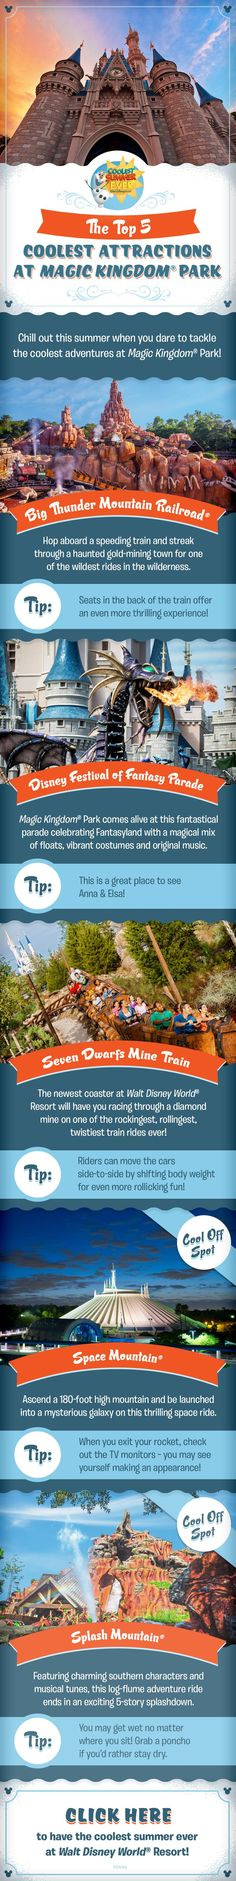 Check out the Top 5 Coolest Attractions at Magic Kingdom Park and get ready to have the Coolest Summer Ever as you plan your family vacation at Walt Disney World! Whether you are craving thrills on Big Thunder Mountain Railroad or Space Mountain, looking to cool off on Splash Mountain, or wanting to check out the Festival of Fantasy Parade, there's something for everyone in your family to enjoy!